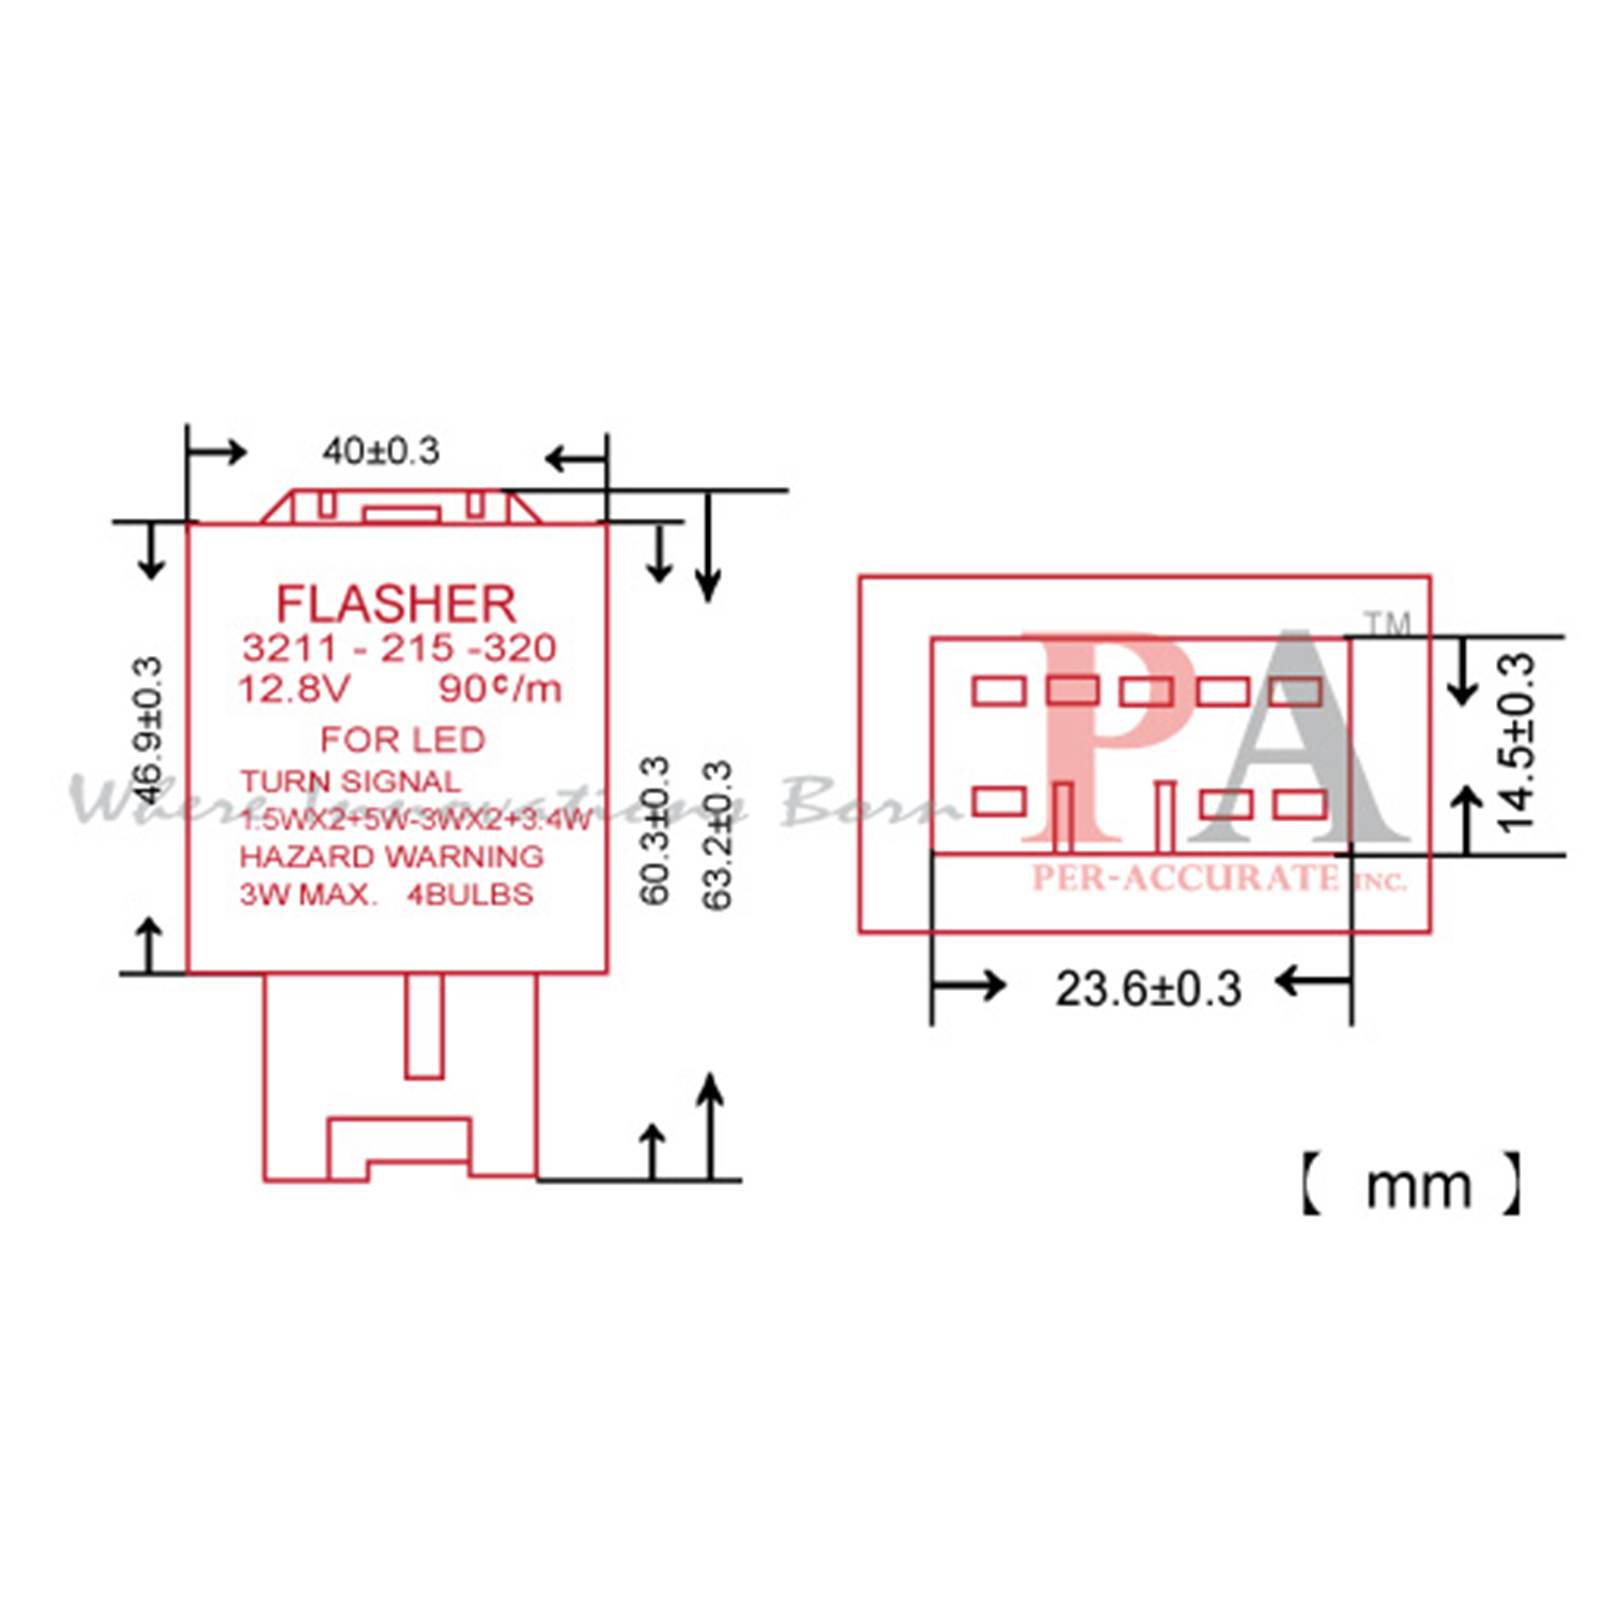 Pa 8 Pin Led Flasher Fixer Turn Singal Mazda Car Use 12v Relay Signal Wiring Diagram Connection Instructions Specification